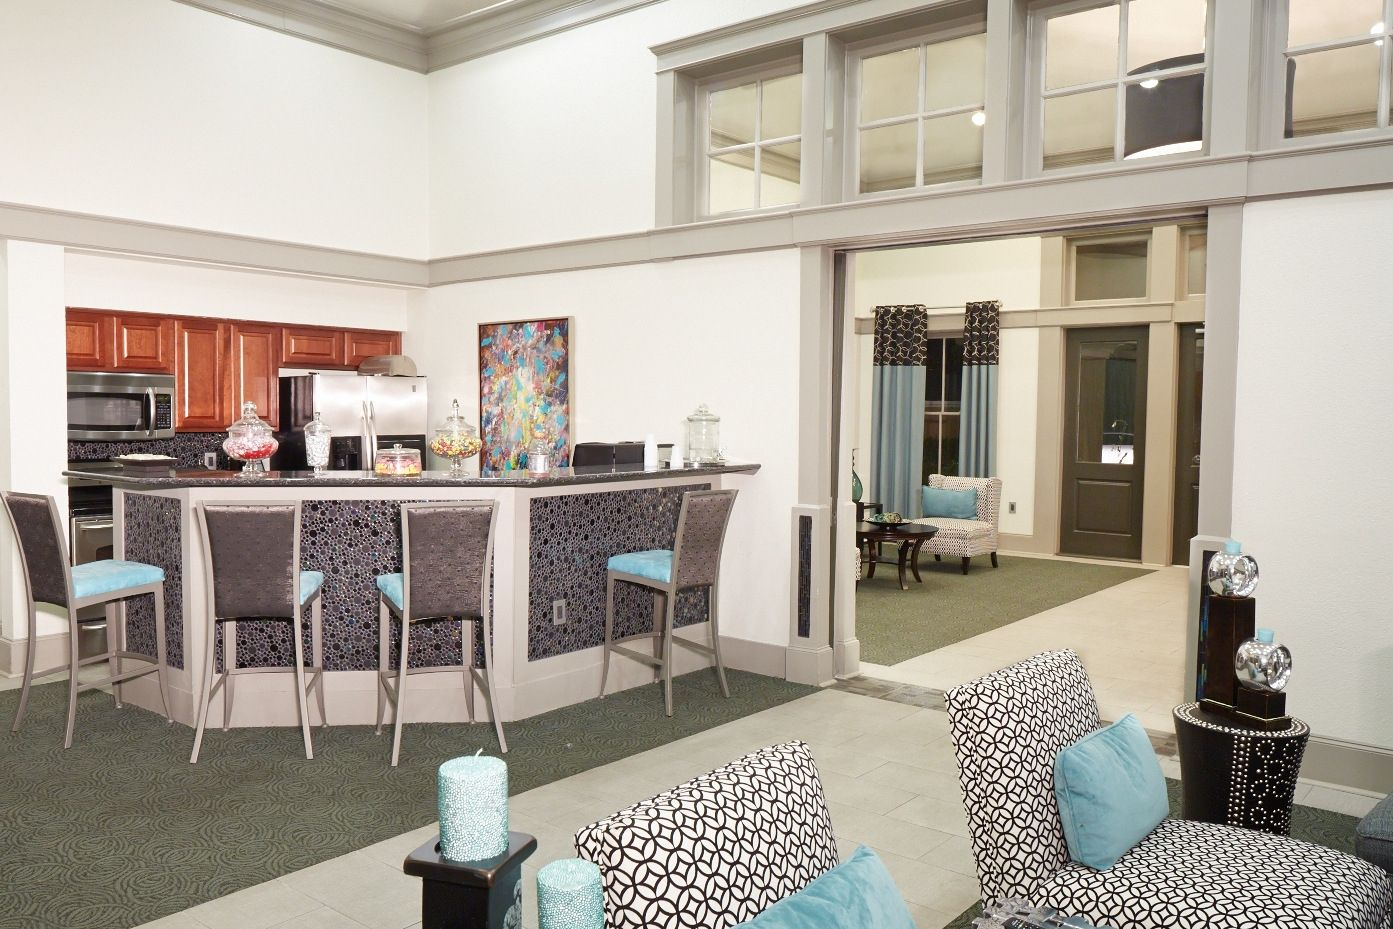 Atera Apartments Relax in our clubhouse and choose from